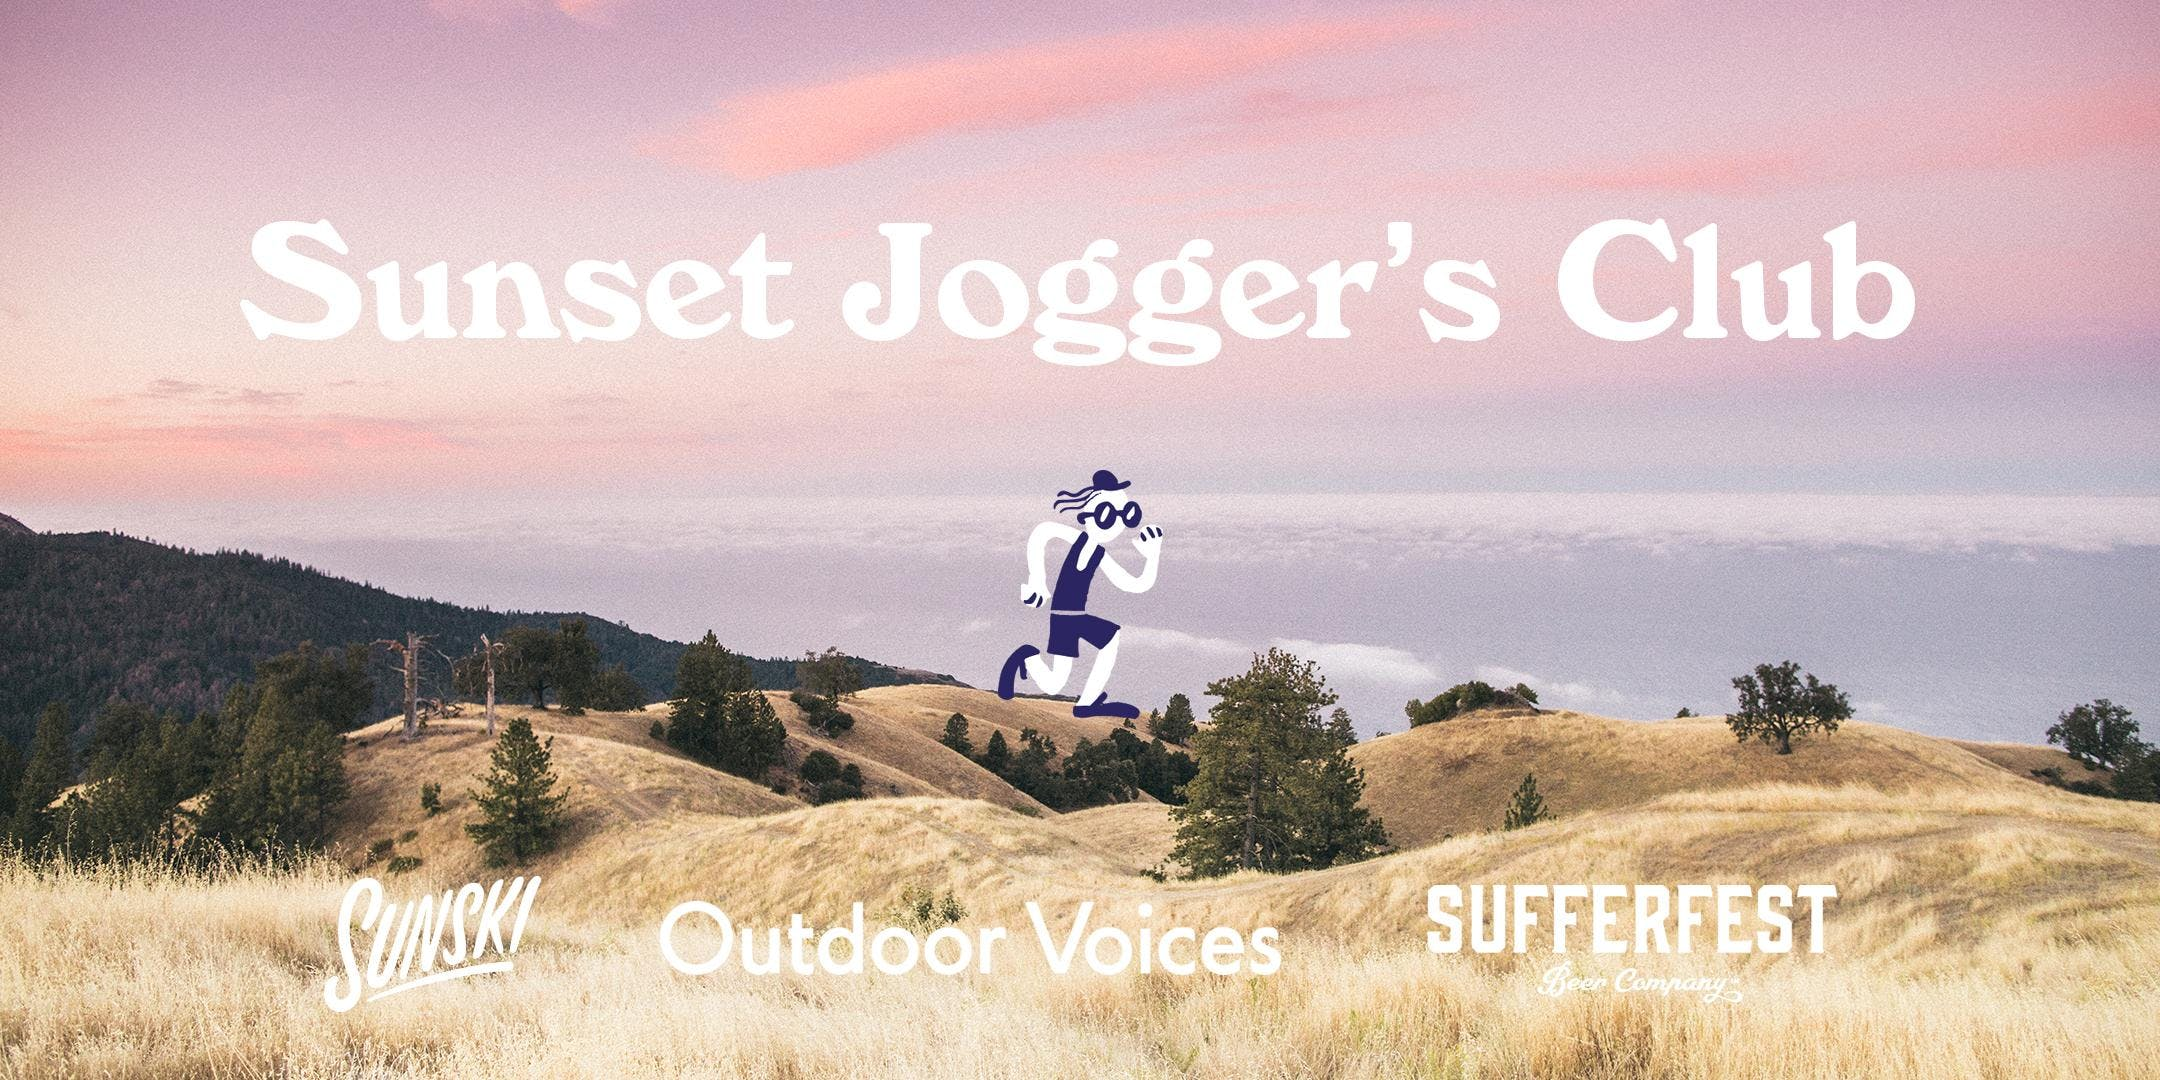 Sunset Jogger S Club Outdoor Voices Sunski Sufferfest Beer